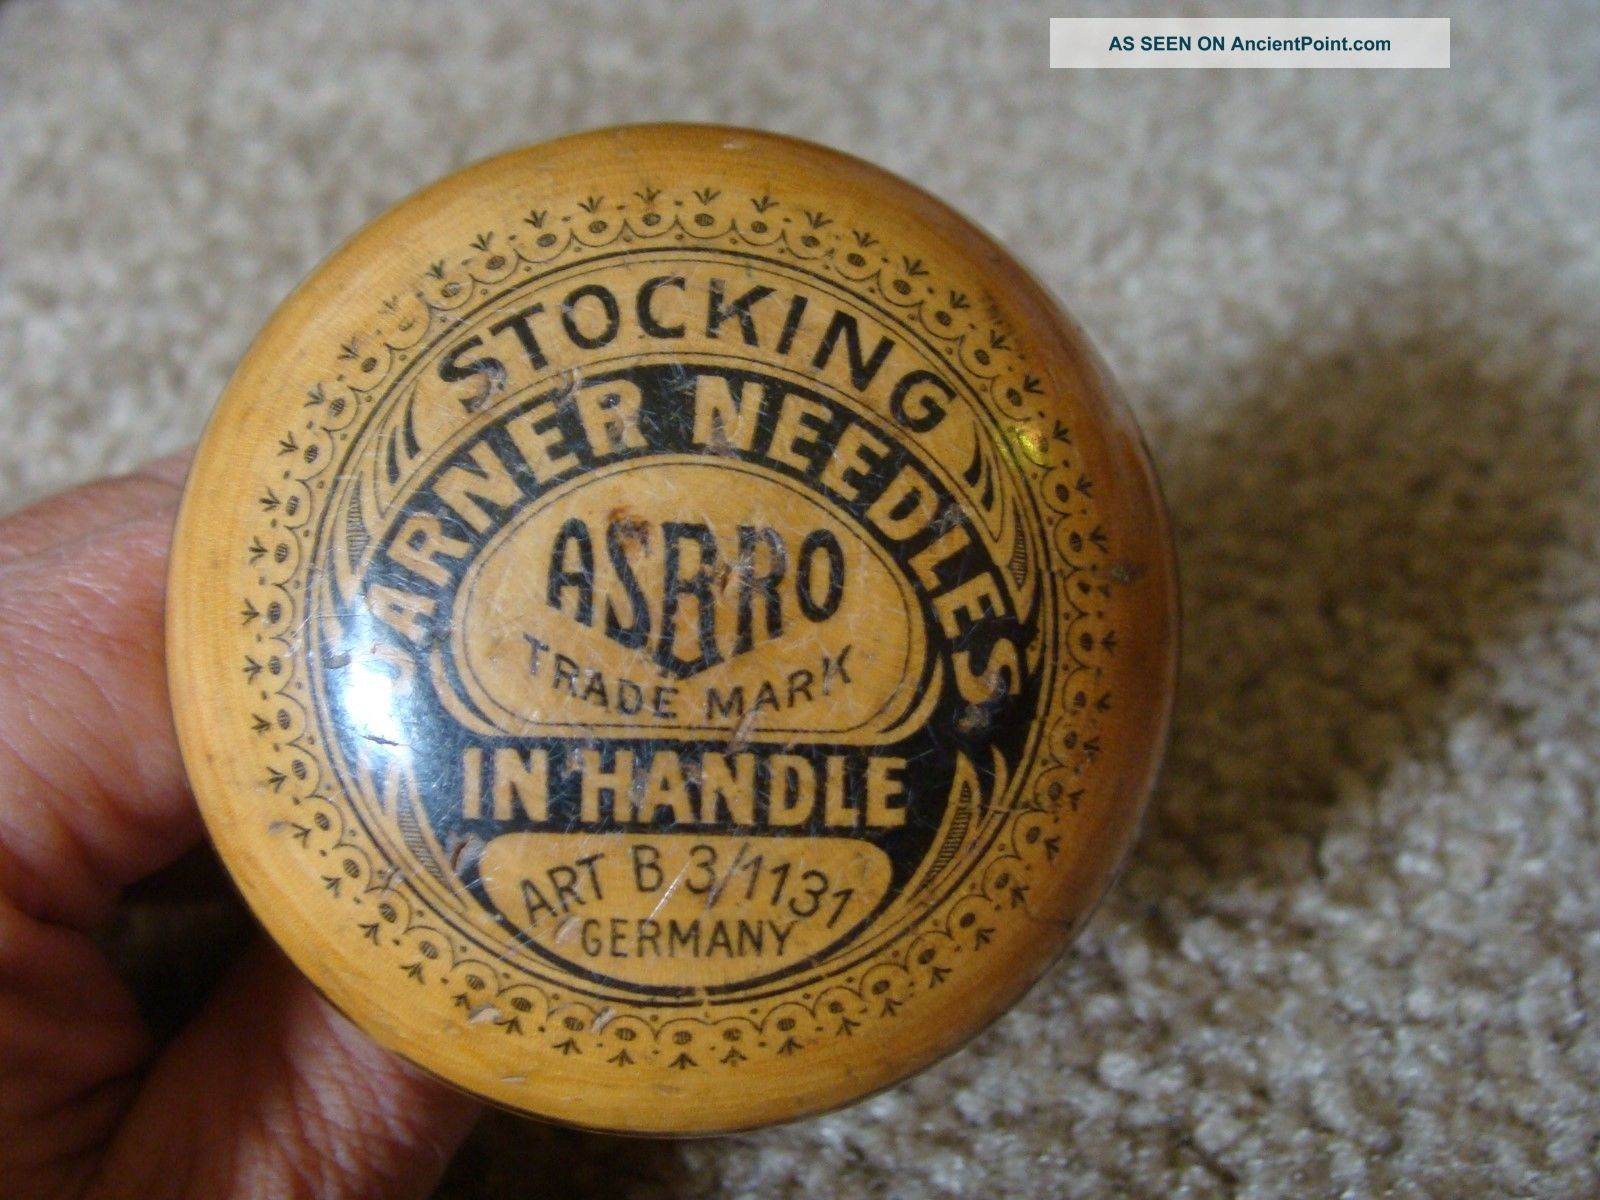 Advertising Asbro Wooden Sock Darner & Needle Case In Handle Germany H Other Antique Sewing photo